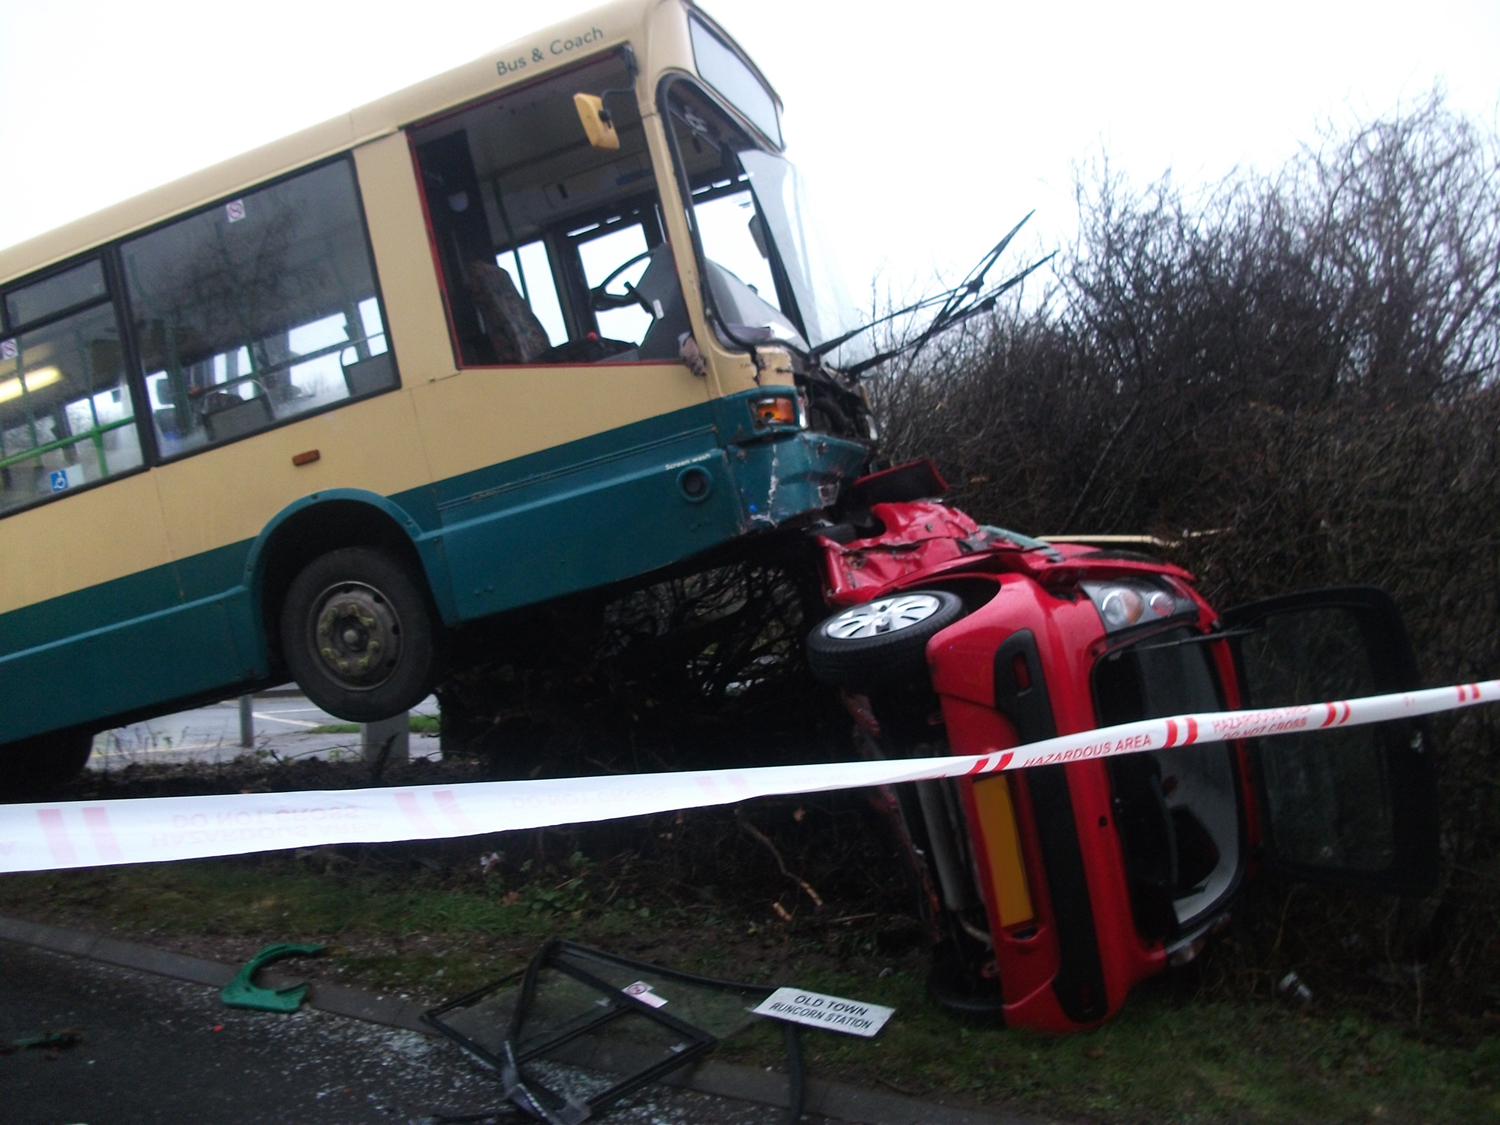 Firefighters treated casualties after a bus and car collided in Runcorn